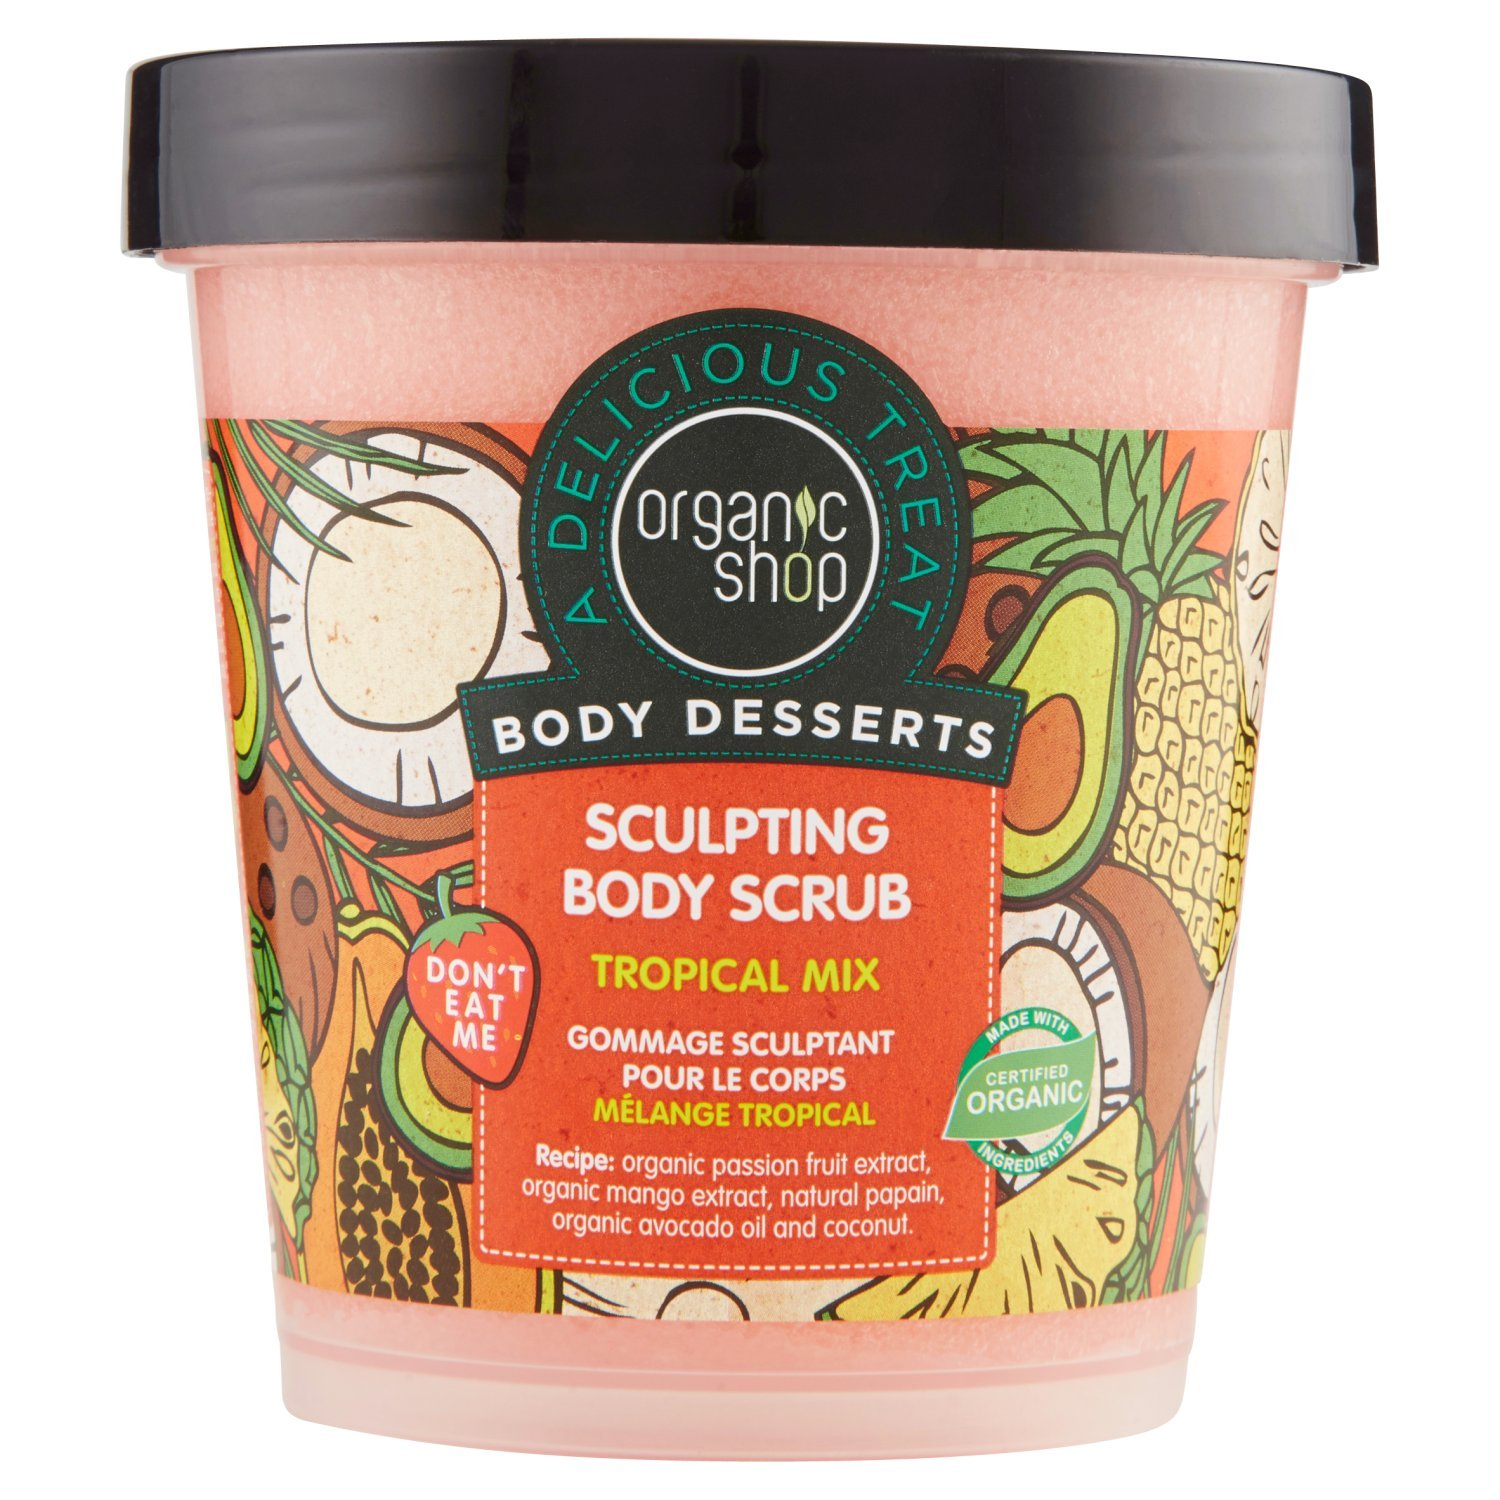 Organic Shop Body Desserts Tropical Mix Sculpting Body Scrub 450 Ml Buy Online In Cambodia Organic Shop Products In Cambodia See Prices Reviews And Free Delivery Over 27 000 Desertcart